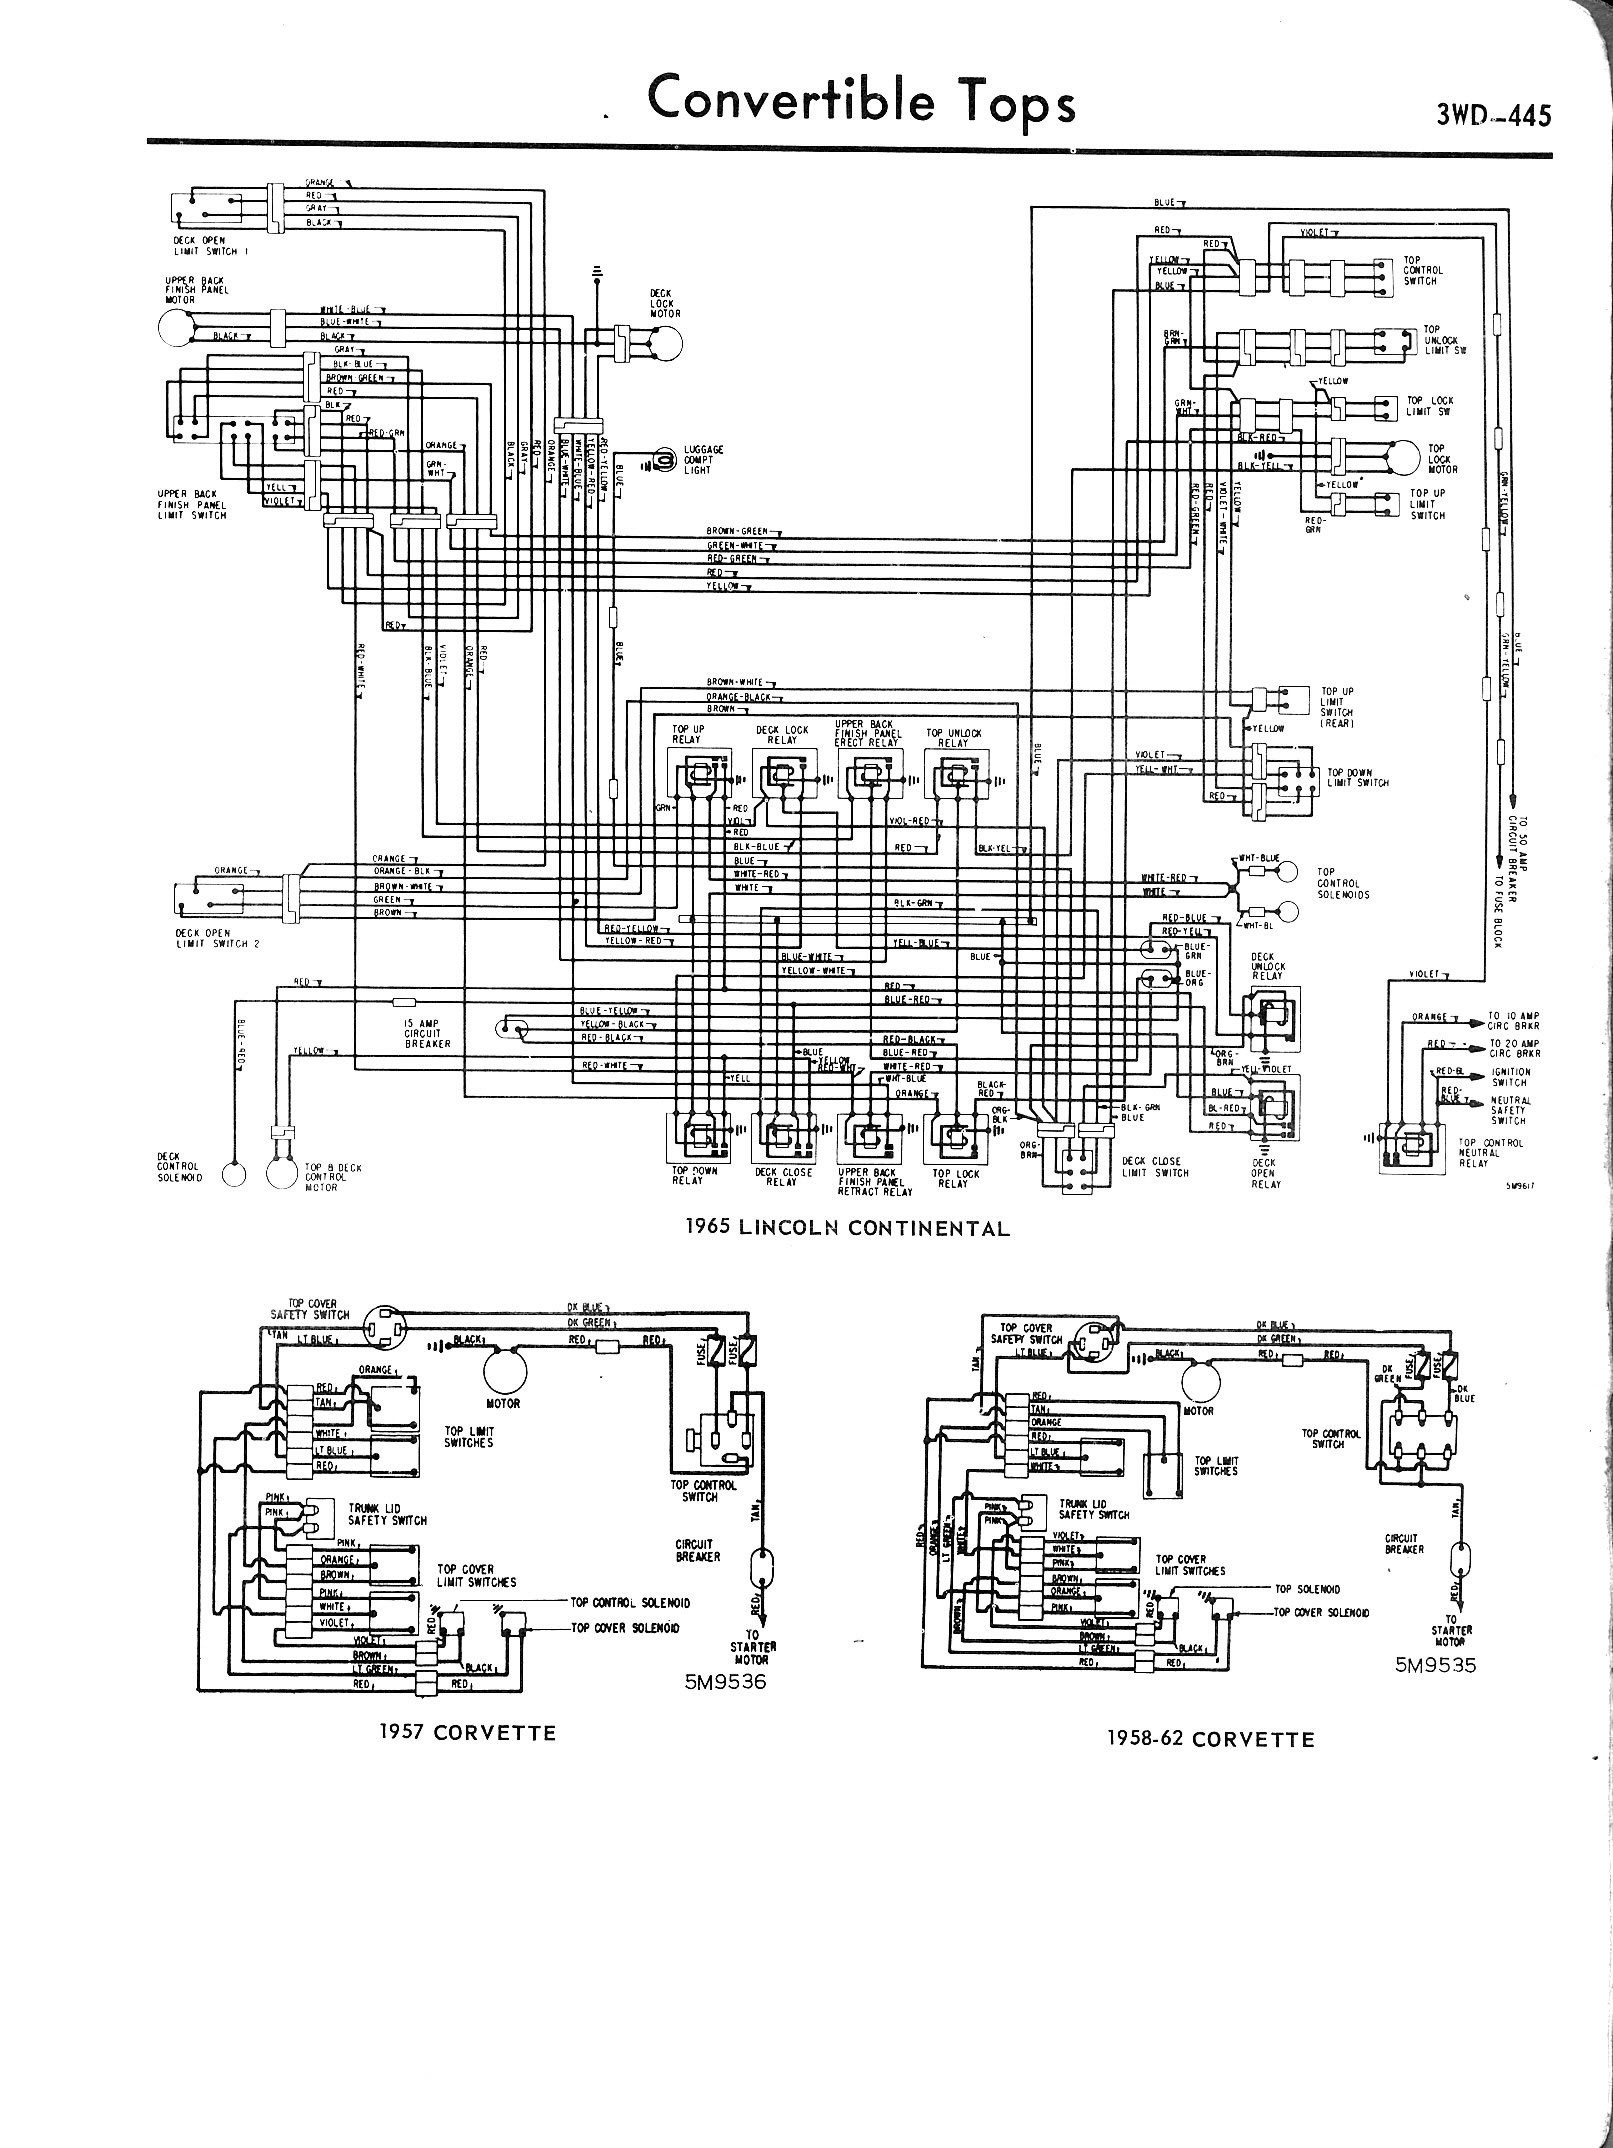 1956 Chevy Fuse Panel Diagram List Of Schematic Circuit Box For The 210 1957 Wagon Wiring Pictures Rh Smdeeming Co Uk